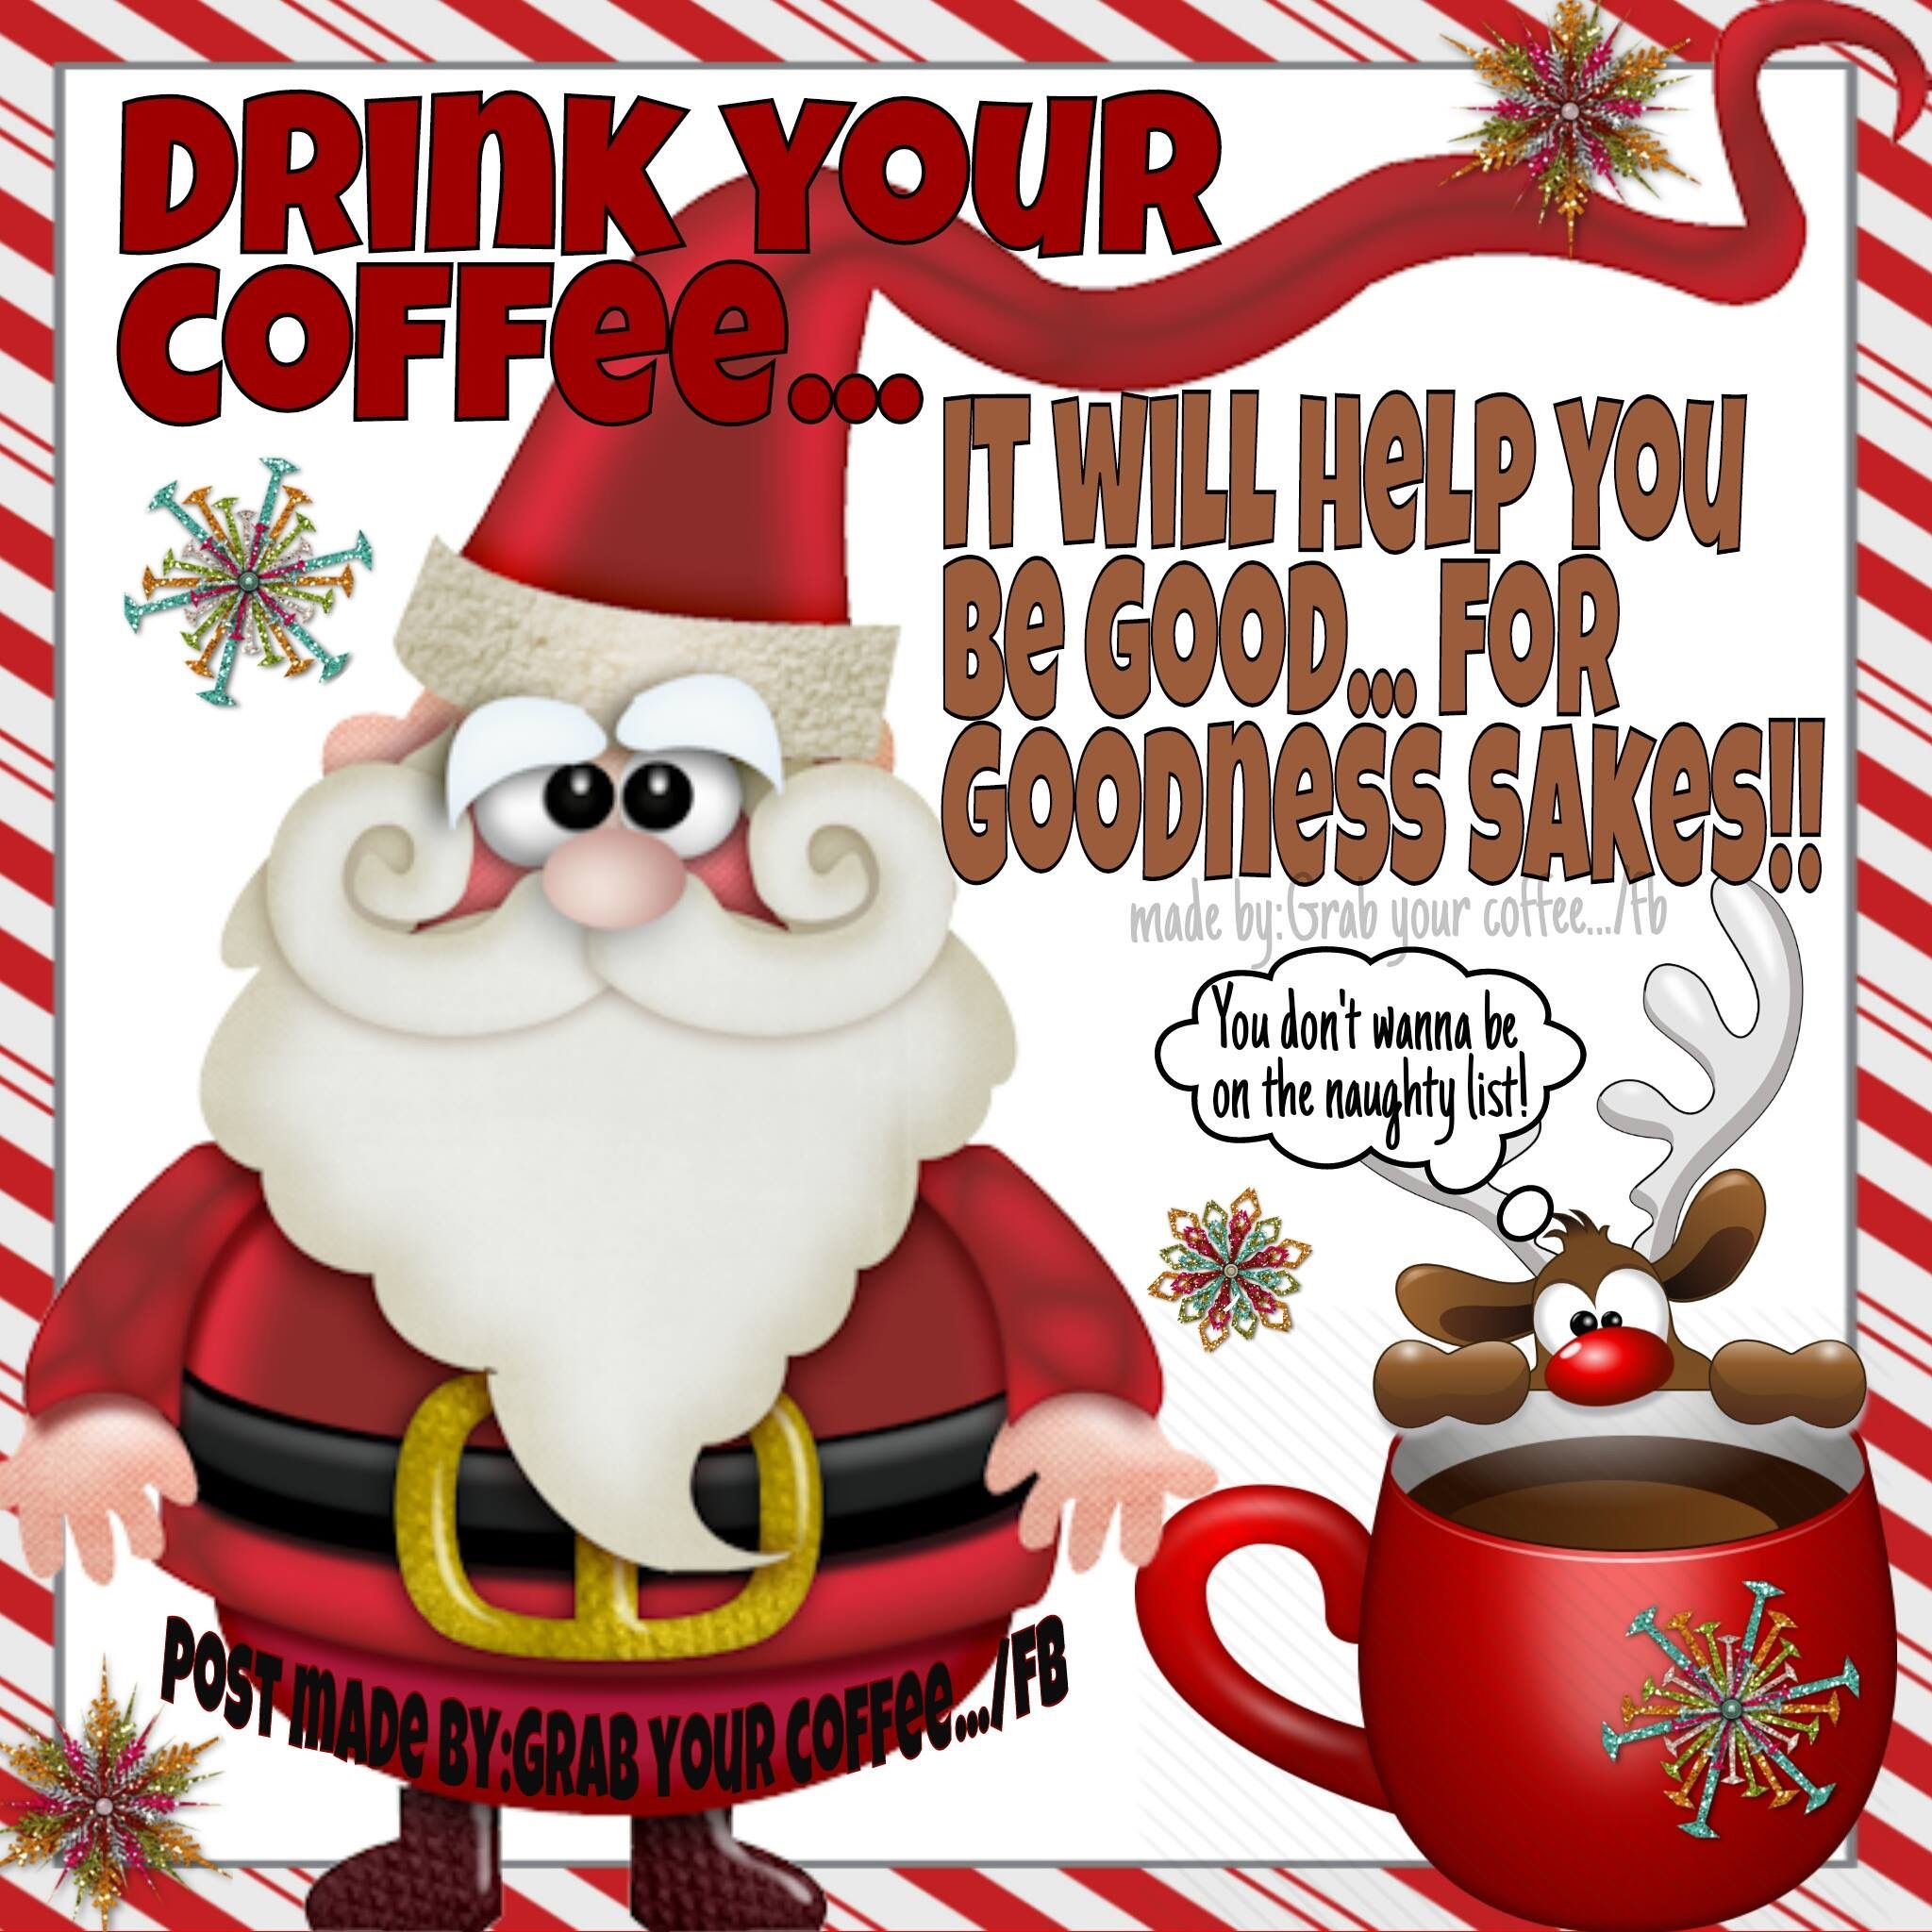 Pin By Penny Erchul On Day Of Week Holiday Coffee Christmas Coffee Good Morning Coffee